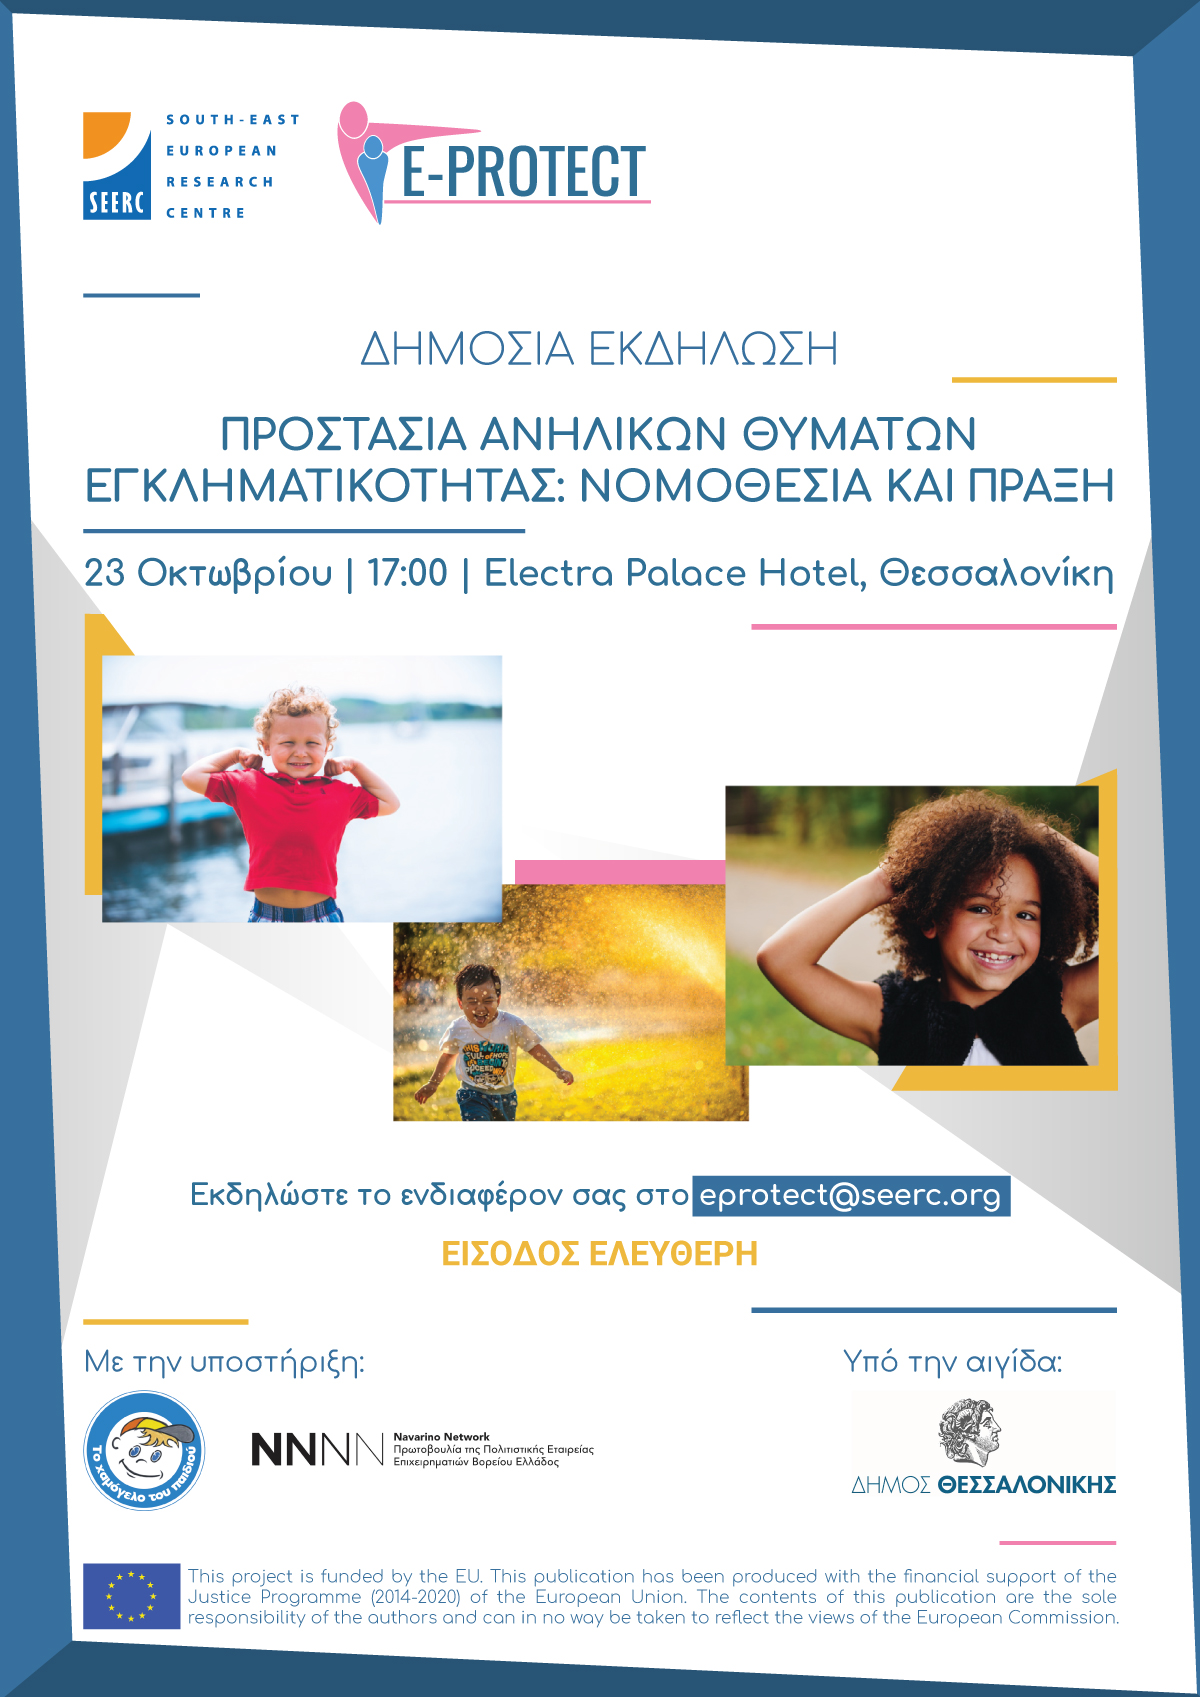 Ε-PROTECT event on 'Protecting Child-victims of Crime' by SEERC